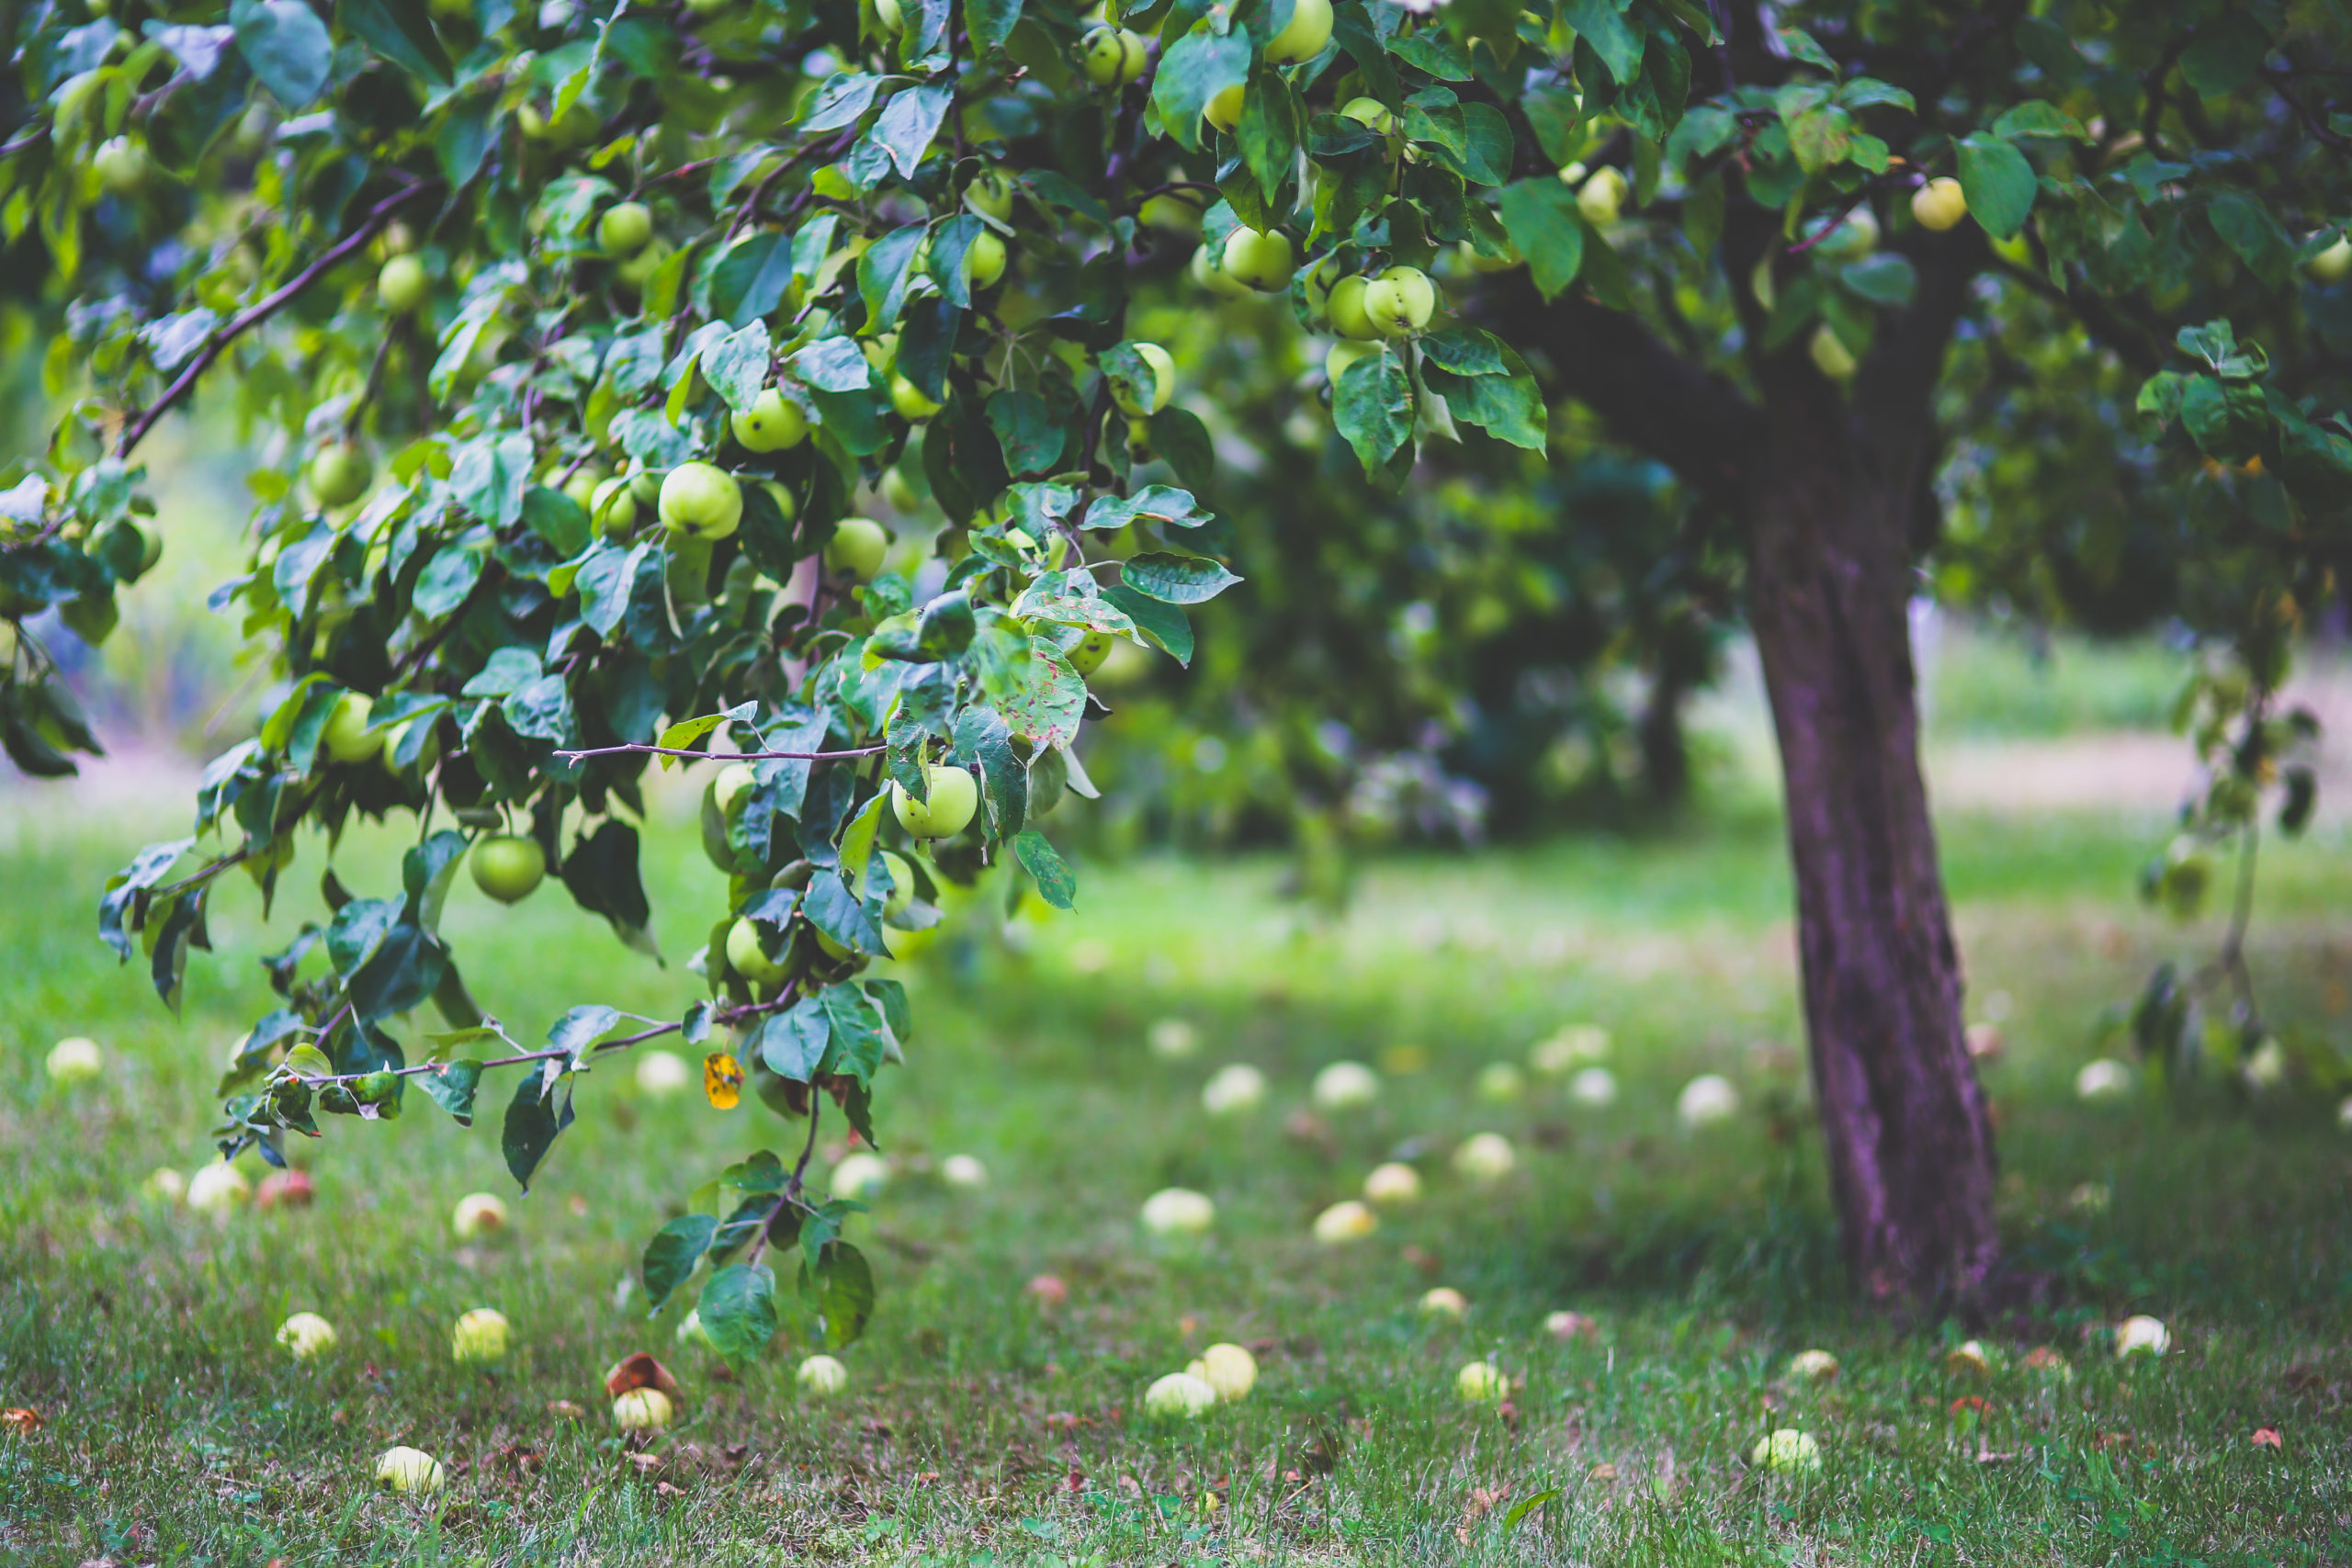 Apple Talk: Working with Growers Over the Phone to Achieve Sustainability Goals